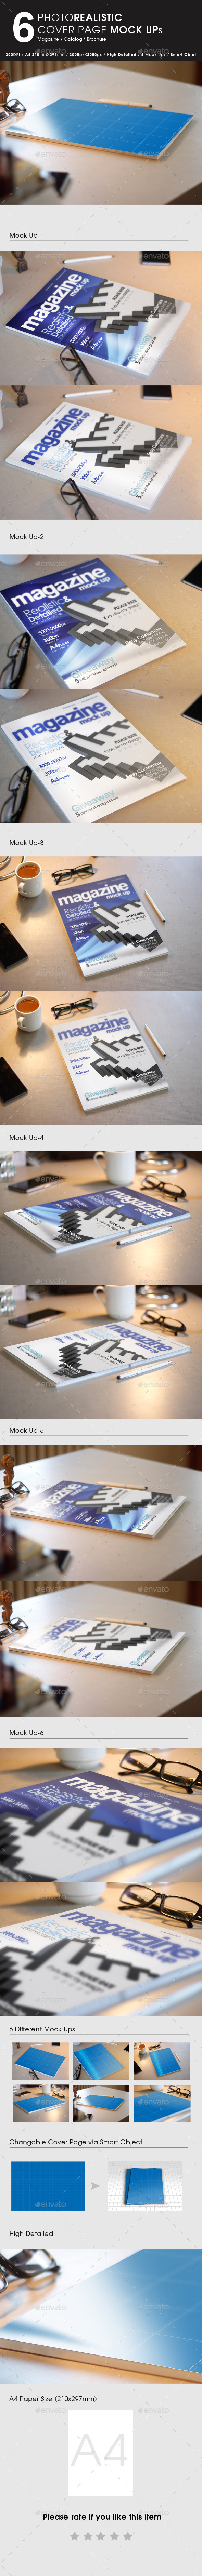 GraphicRiver 6 Photorealistic Magazine Mock Up 9456314